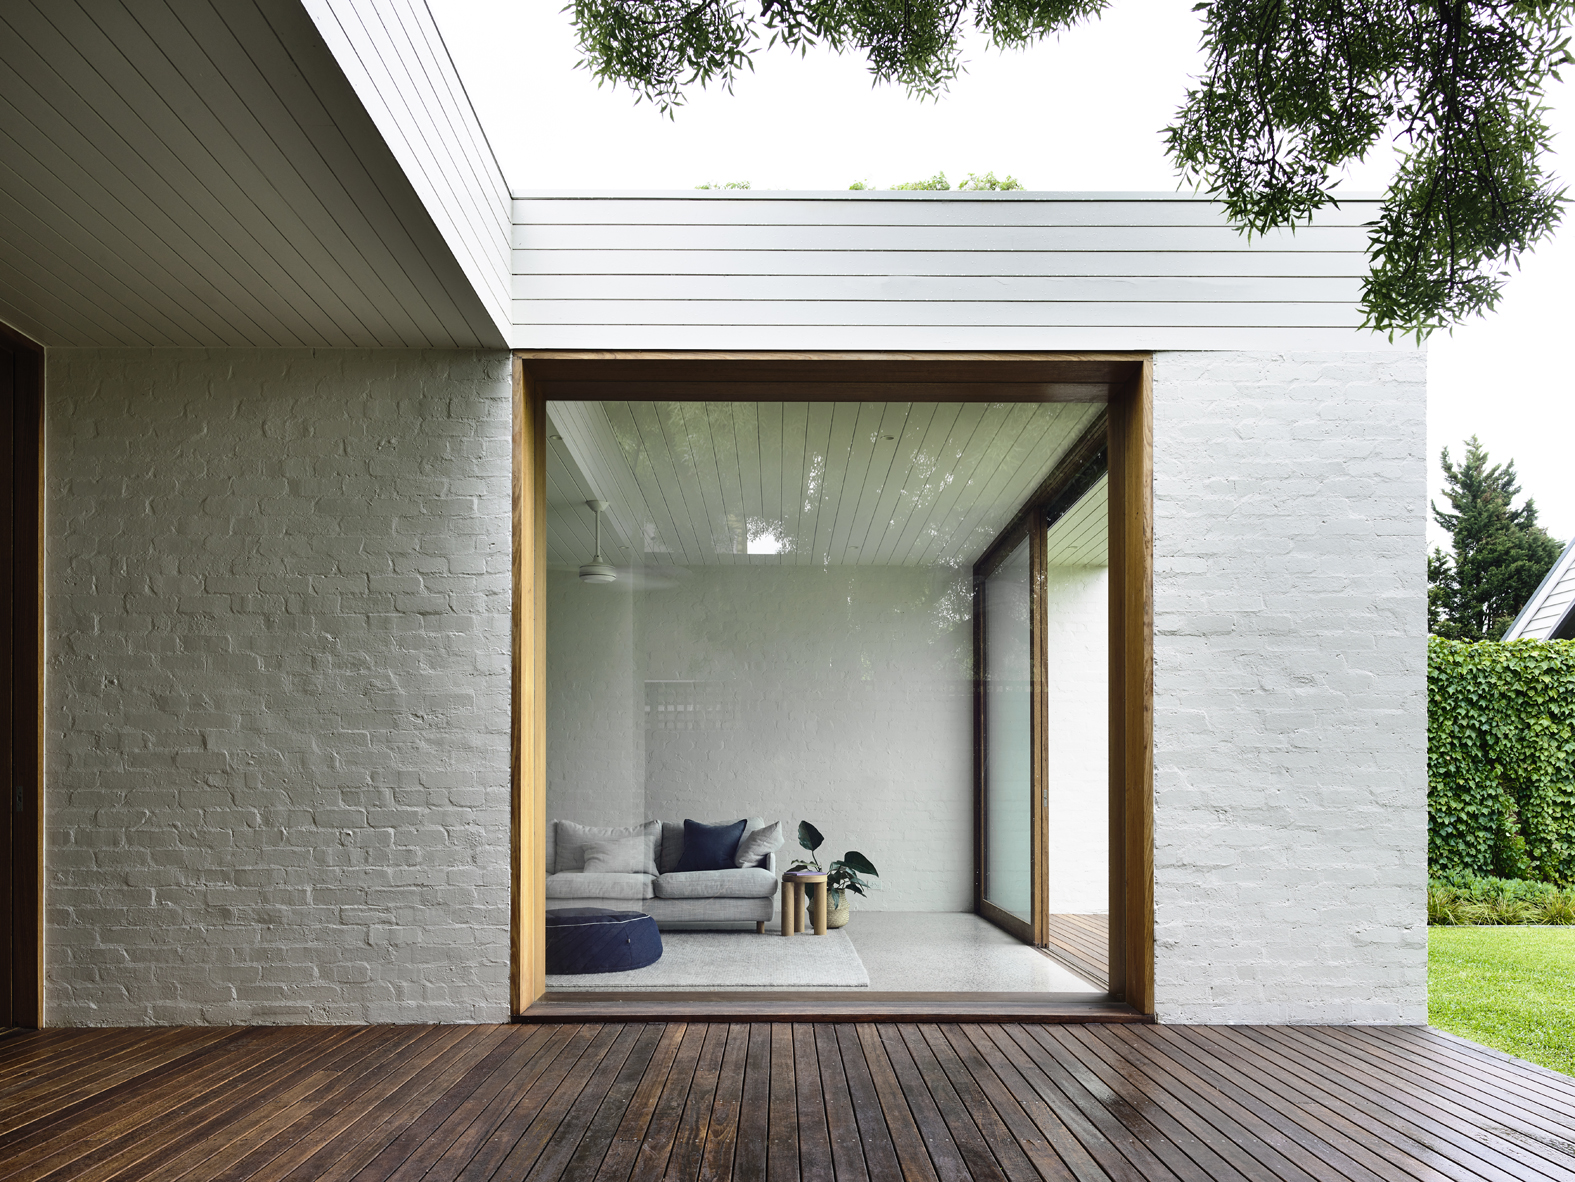 Brighton House Sees A Series Of Open, Light Filled North Facing Spaces, And Also Precise